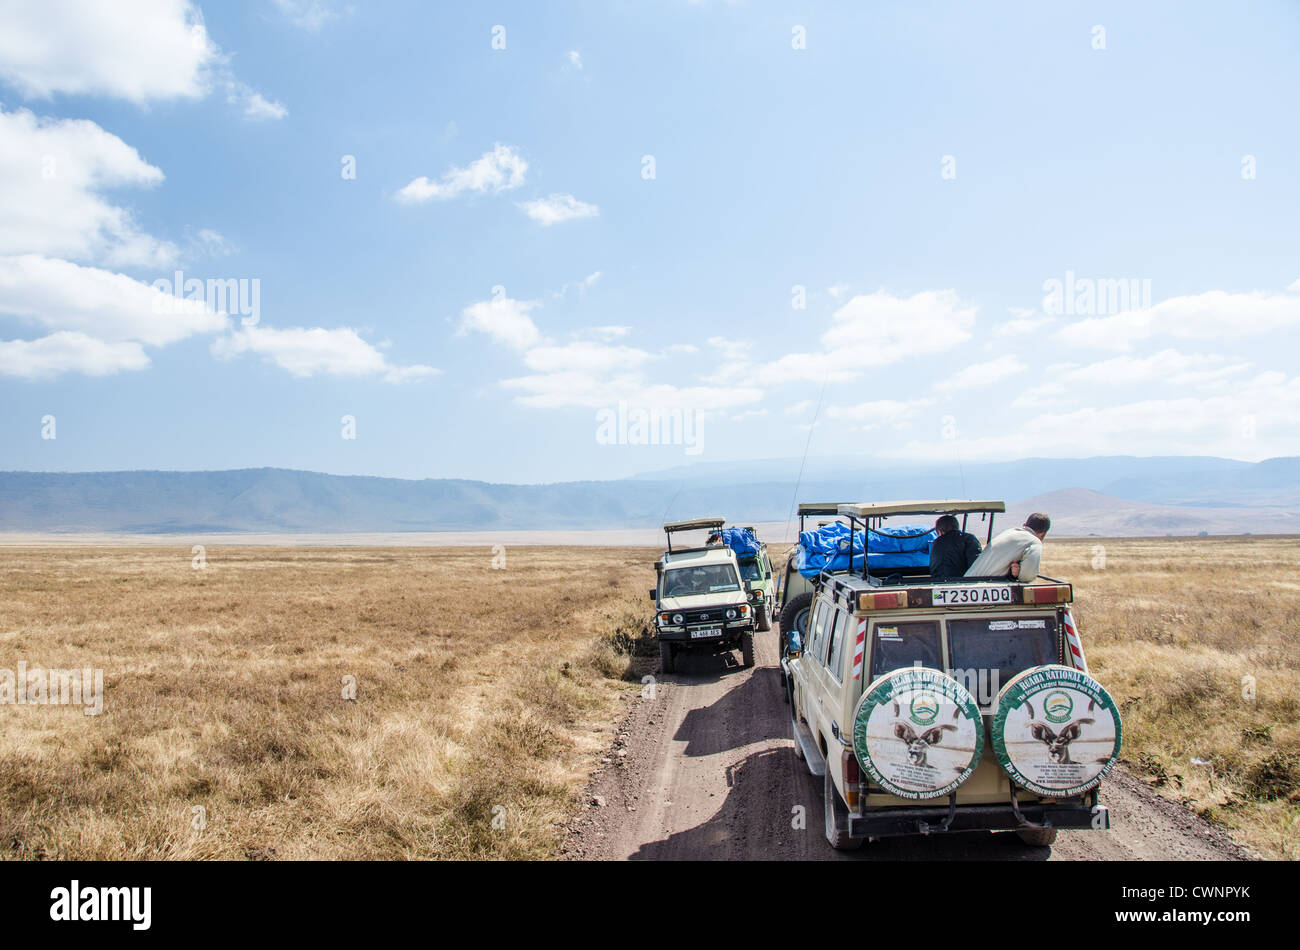 NGORONGORO CONSERVATIONAL AREA, Tanzania - Safari vehicles stopped to watch wildelife at Ngorongoro Crater in the - Stock Image